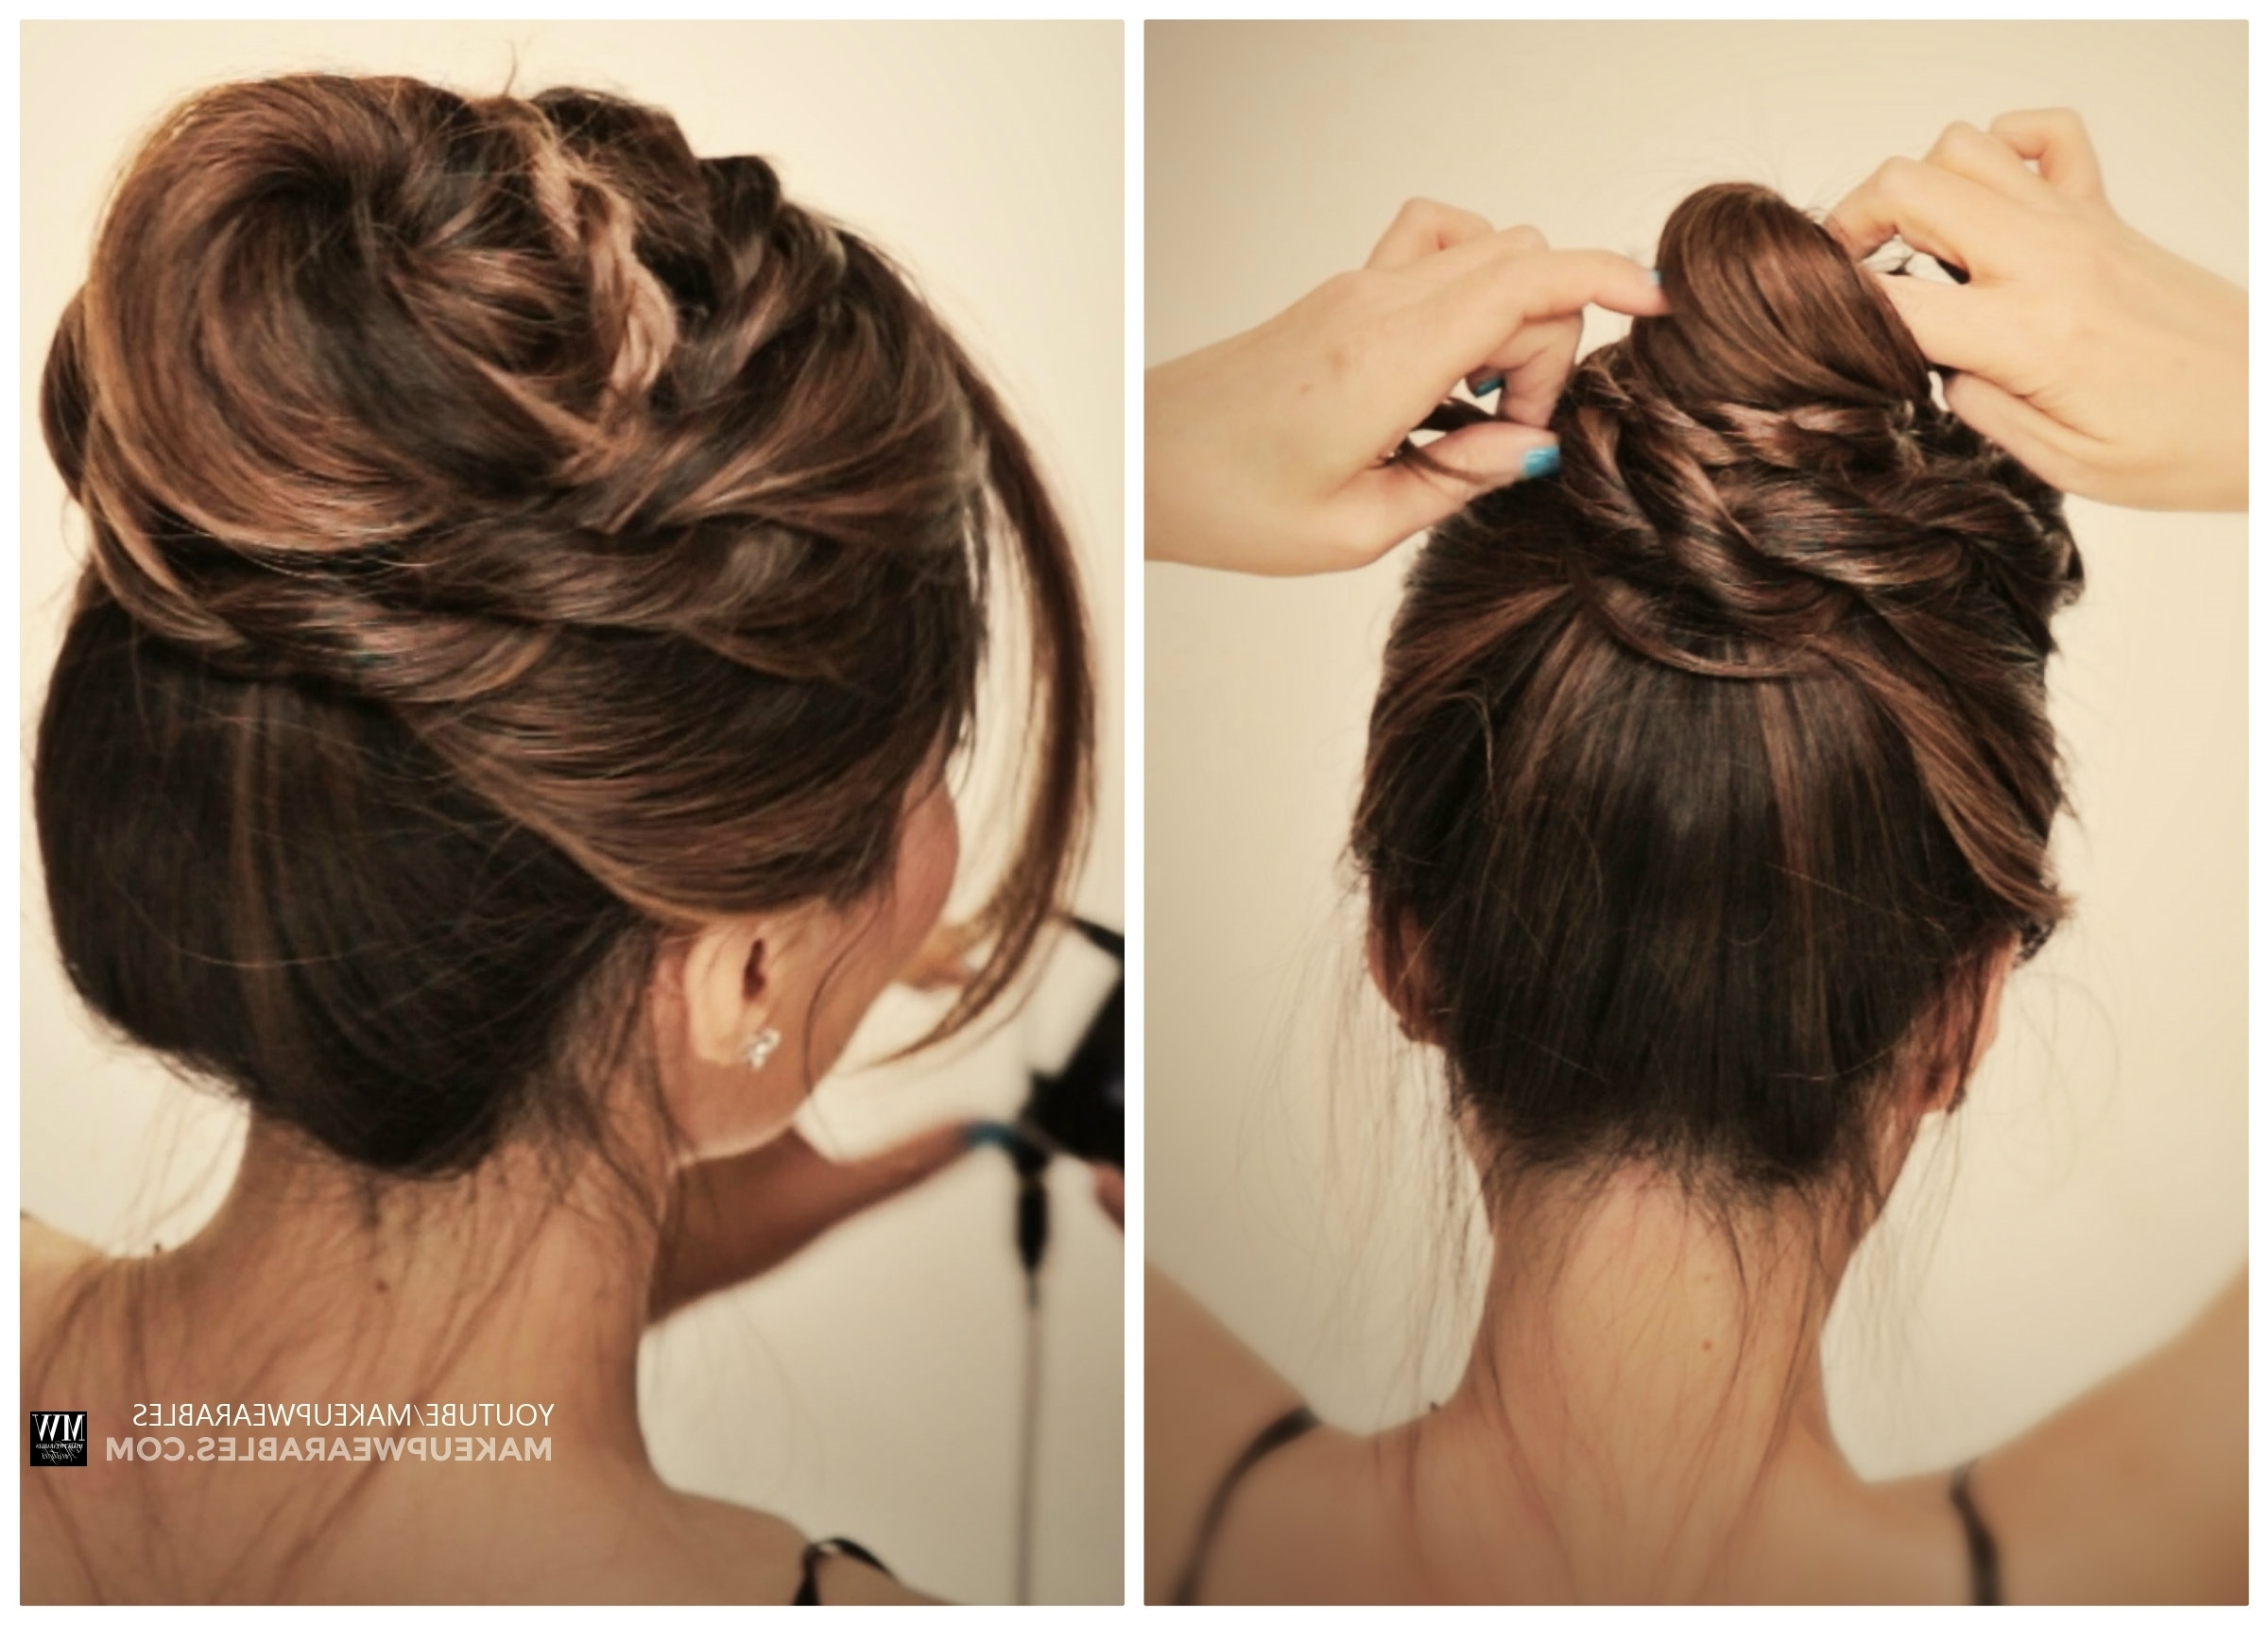 How To: 5 Amazingly Cute + Easy Hairstyles With A Simple Twist For Easy Everyday Updo Hairstyles For Long Hair (View 11 of 15)